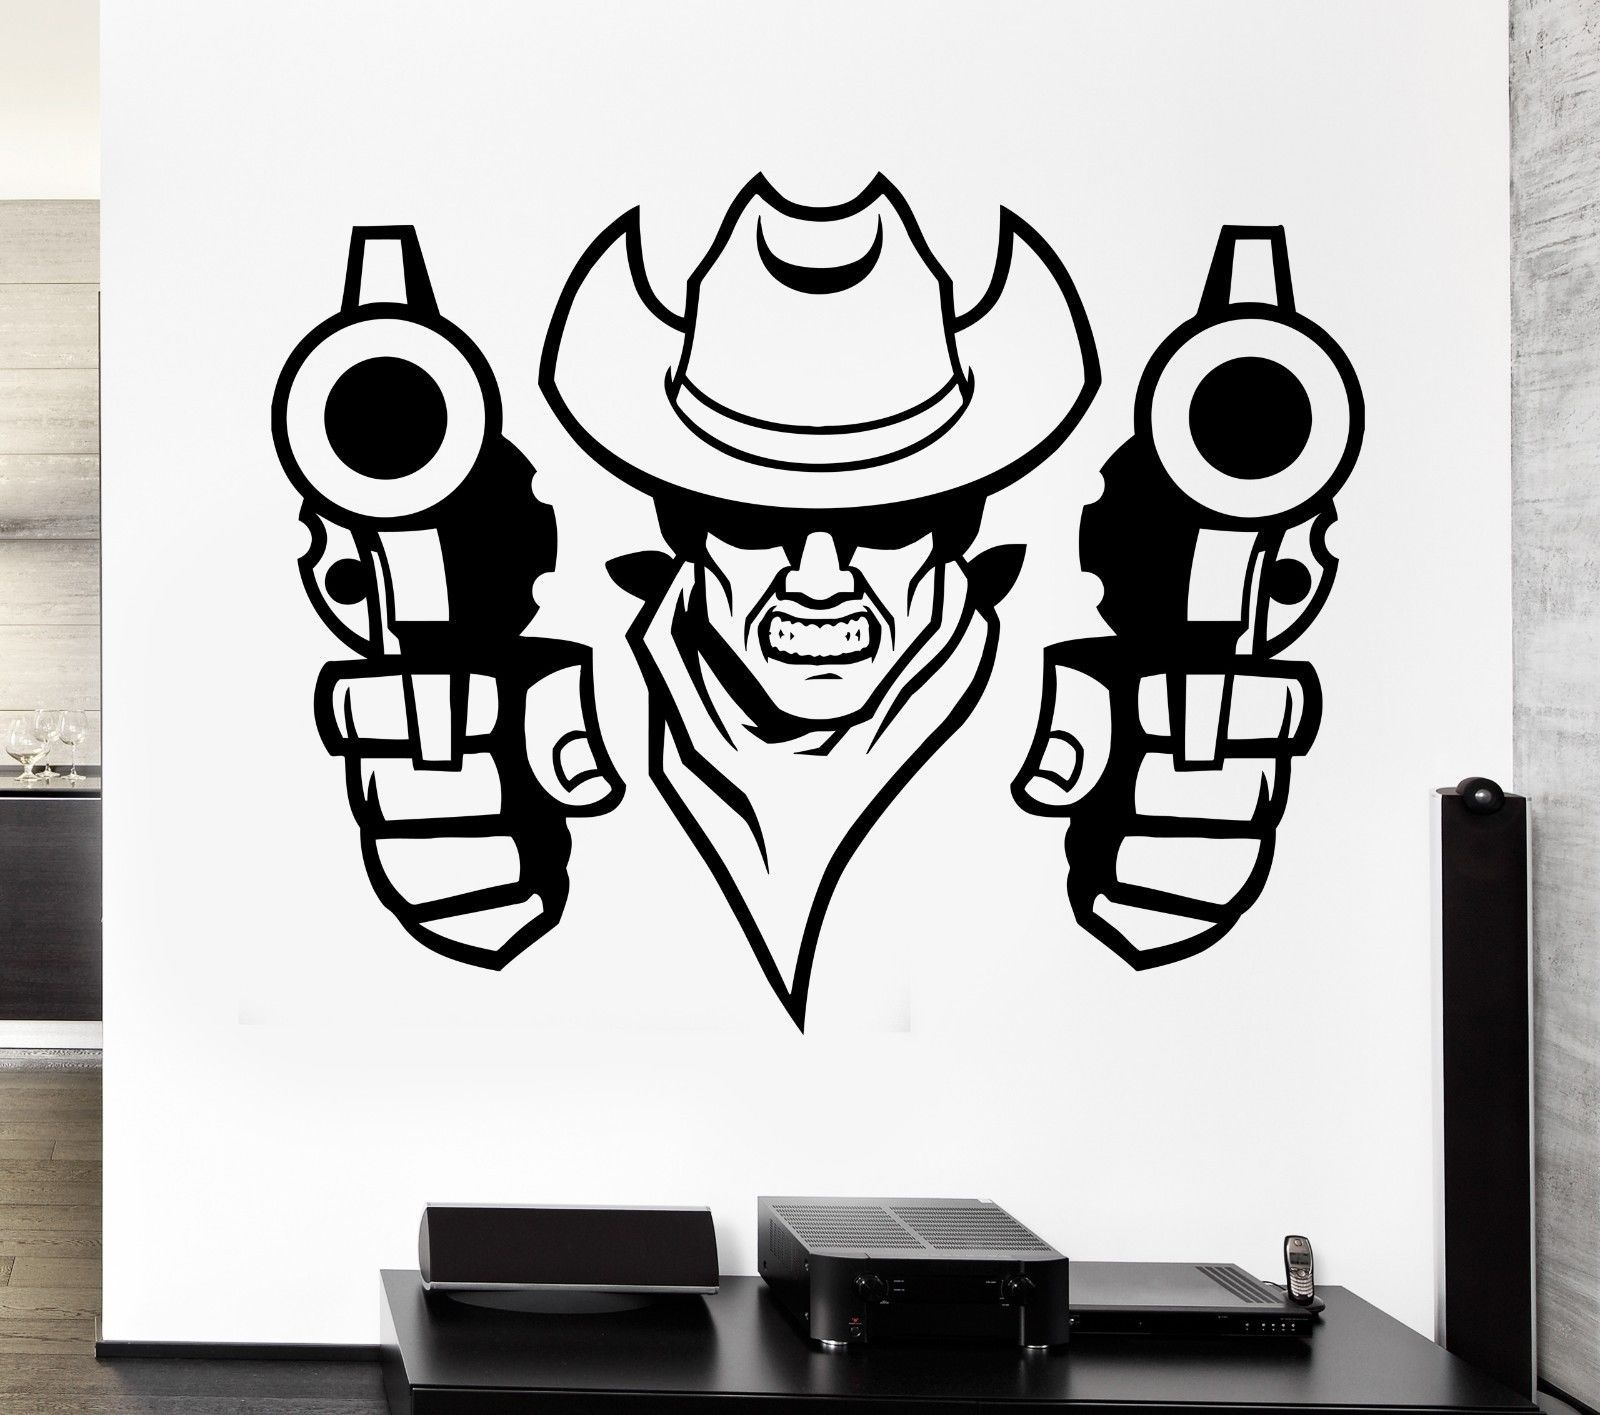 Wall Art Stickers East Rand : Wall decal bandit cowboy robber revolver hat east duel